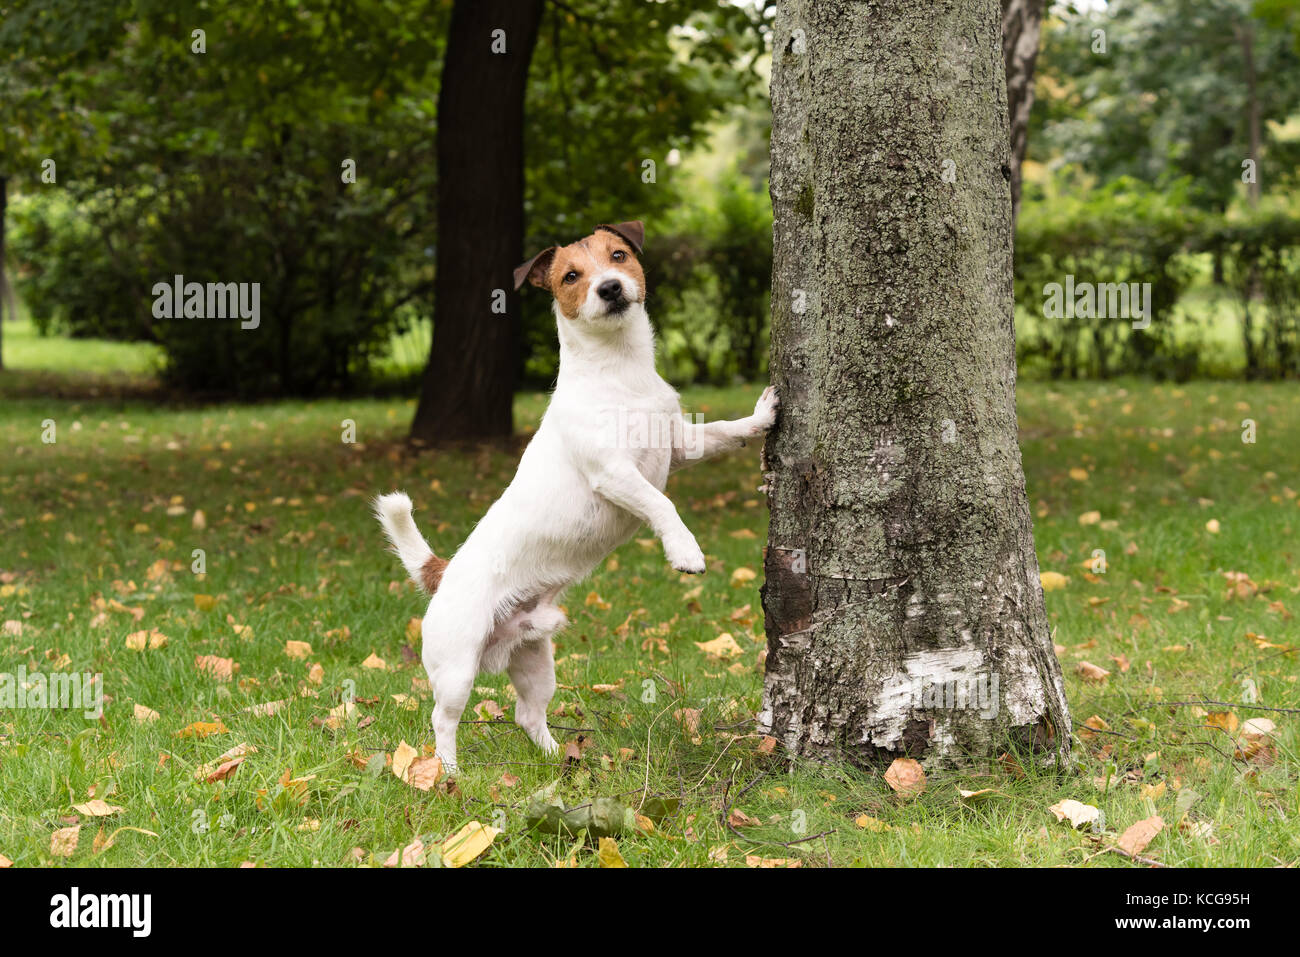 Cute dog at autumn park leaning on tree - Stock Image